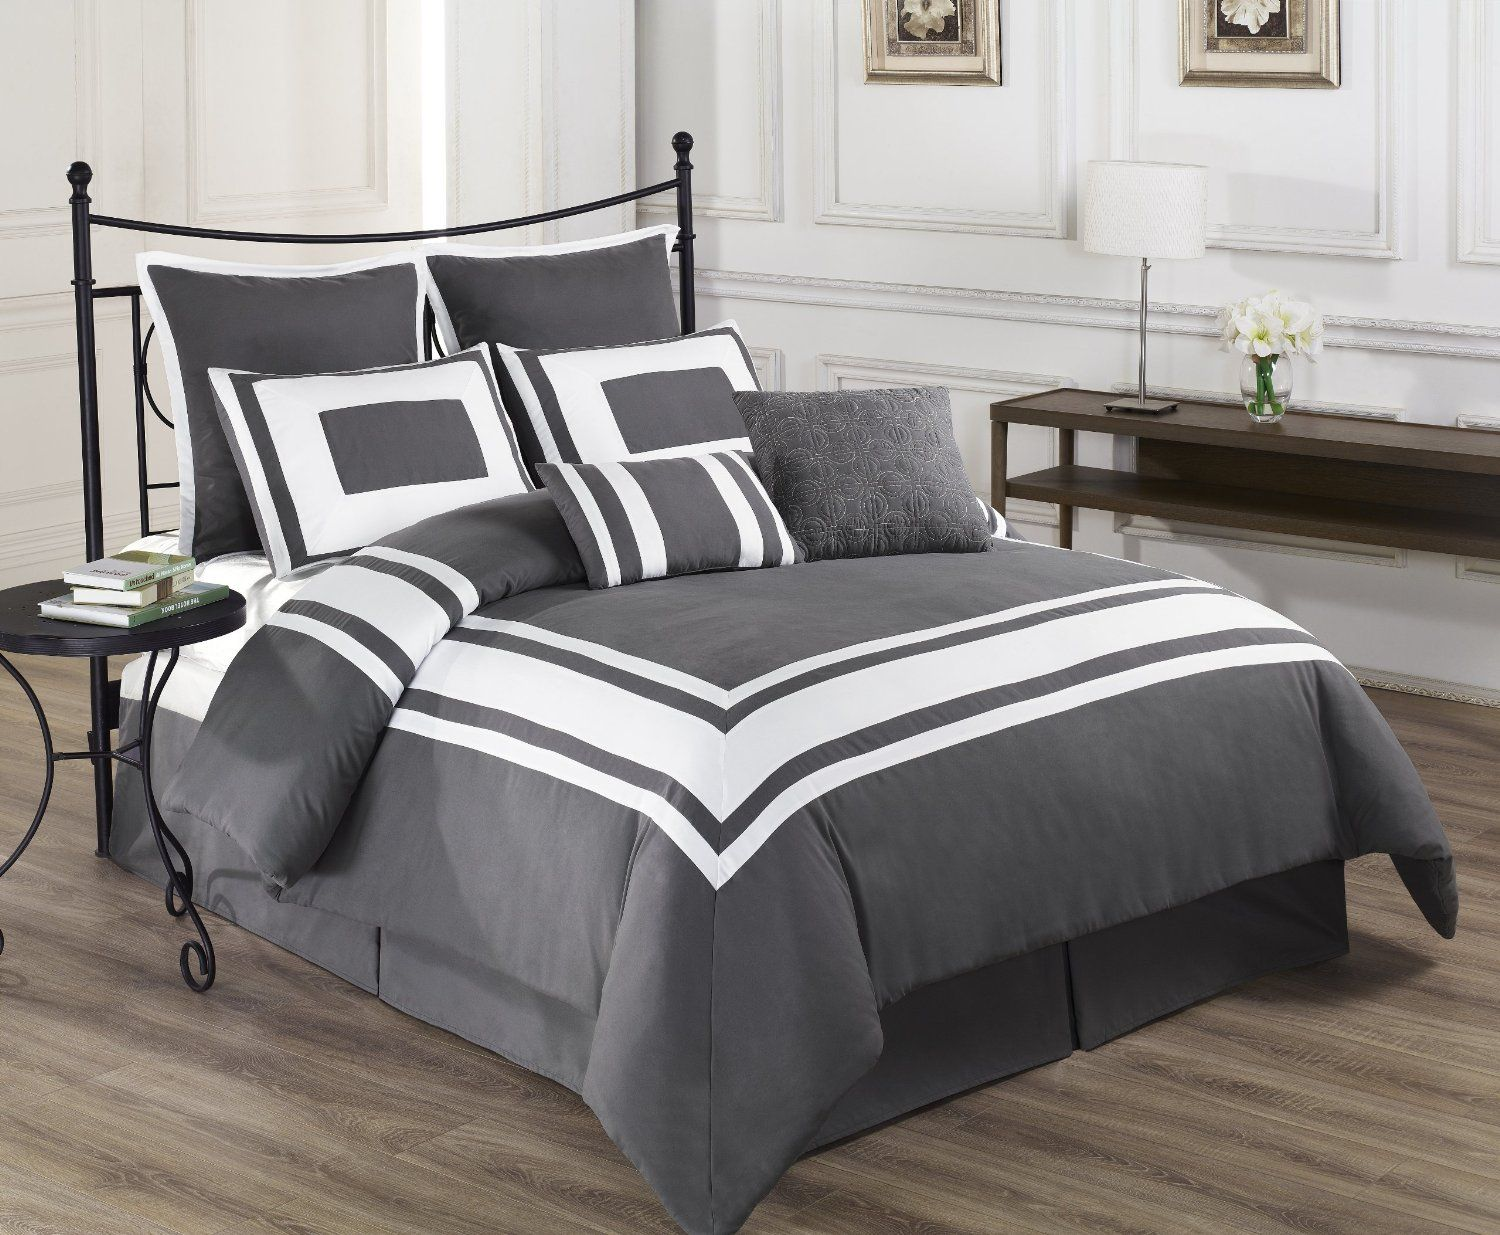 sale ideas sets charcoal delboutree design bedding dark bedrooms in gray decor grey set ease turquoise comforter regarding